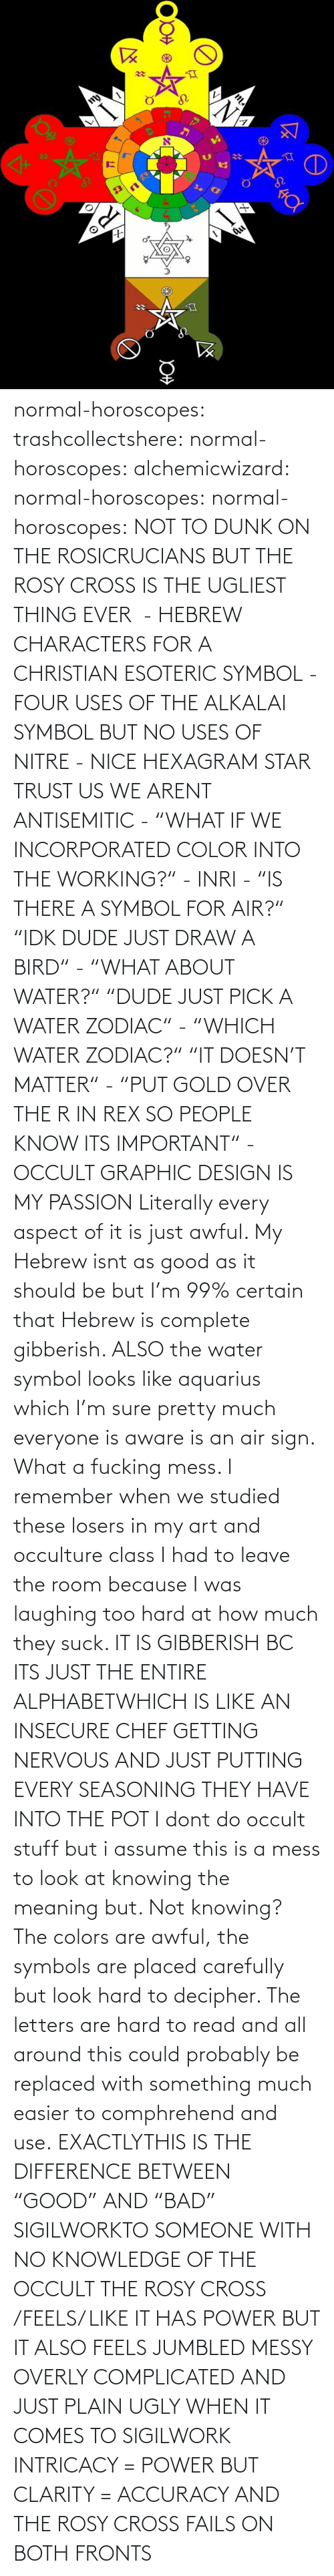 "Knowledge: normal-horoscopes:  trashcollectshere: normal-horoscopes:   alchemicwizard:  normal-horoscopes:  normal-horoscopes: NOT TO DUNK ON THE ROSICRUCIANS BUT THE ROSY CROSS IS THE UGLIEST THING EVER  - HEBREW CHARACTERS FOR A CHRISTIAN ESOTERIC SYMBOL - FOUR USES OF THE ALKALAI SYMBOL BUT NO USES OF NITRE - NICE HEXAGRAM STAR TRUST US WE ARENT ANTISEMITIC - ""WHAT IF WE INCORPORATED COLOR INTO THE WORKING?"" - INRI - ""IS THERE A SYMBOL FOR AIR?"" ""IDK DUDE JUST DRAW A BIRD"" - ""WHAT ABOUT WATER?"" ""DUDE JUST PICK A WATER ZODIAC"" - ""WHICH WATER ZODIAC?"" ""IT DOESN'T MATTER"" - ""PUT GOLD OVER THE R IN REX SO PEOPLE KNOW ITS IMPORTANT"" - OCCULT GRAPHIC DESIGN IS MY PASSION  Literally every aspect of it is just awful. My Hebrew isnt as good as it should be but I'm 99% certain that Hebrew is complete gibberish.  ALSO the water symbol looks like aquarius which I'm sure pretty much everyone is aware is an air sign. What a fucking mess.  I remember when we studied these losers in my art and occulture class I had to leave the room because I was laughing too hard at how much they suck.   IT IS GIBBERISH BC ITS JUST THE ENTIRE ALPHABETWHICH IS LIKE AN INSECURE CHEF GETTING NERVOUS AND JUST PUTTING EVERY SEASONING THEY HAVE INTO THE POT     I dont do occult stuff but i assume this is a mess to look at knowing the meaning but. Not knowing? The colors are awful, the symbols are placed carefully but look hard to decipher. The letters are hard to read and all around this could probably be replaced with something much easier to comphrehend and use.  EXACTLYTHIS IS THE DIFFERENCE BETWEEN ""GOOD"" AND ""BAD"" SIGILWORKTO SOMEONE WITH NO KNOWLEDGE OF THE OCCULT THE ROSY CROSS /FEELS/ LIKE IT HAS POWER BUT IT ALSO FEELS JUMBLED MESSY OVERLY COMPLICATED AND JUST PLAIN UGLY WHEN IT COMES TO SIGILWORK INTRICACY = POWER BUT CLARITY = ACCURACY AND THE ROSY CROSS FAILS ON BOTH FRONTS"